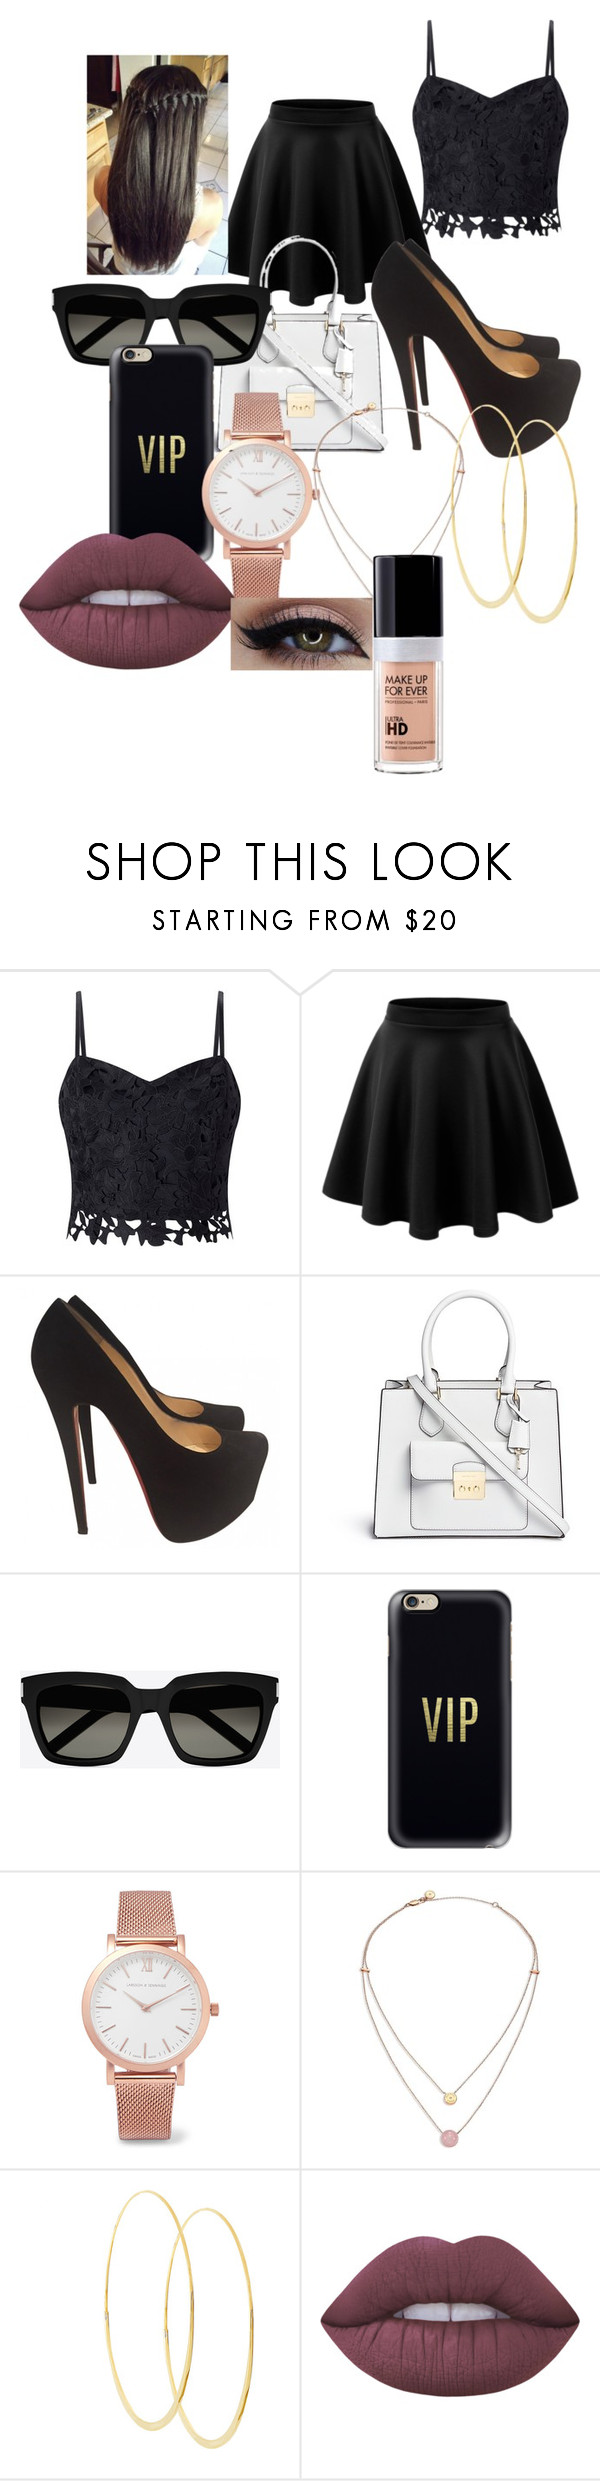 """""""Untitled #77"""" by adorably3vil on Polyvore featuring Lipsy, Christian Louboutin, Michael Kors, Yves Saint Laurent, Casetify, Larsson & Jennings, Lana, Lime Crime and MAKE UP FOR EVER"""